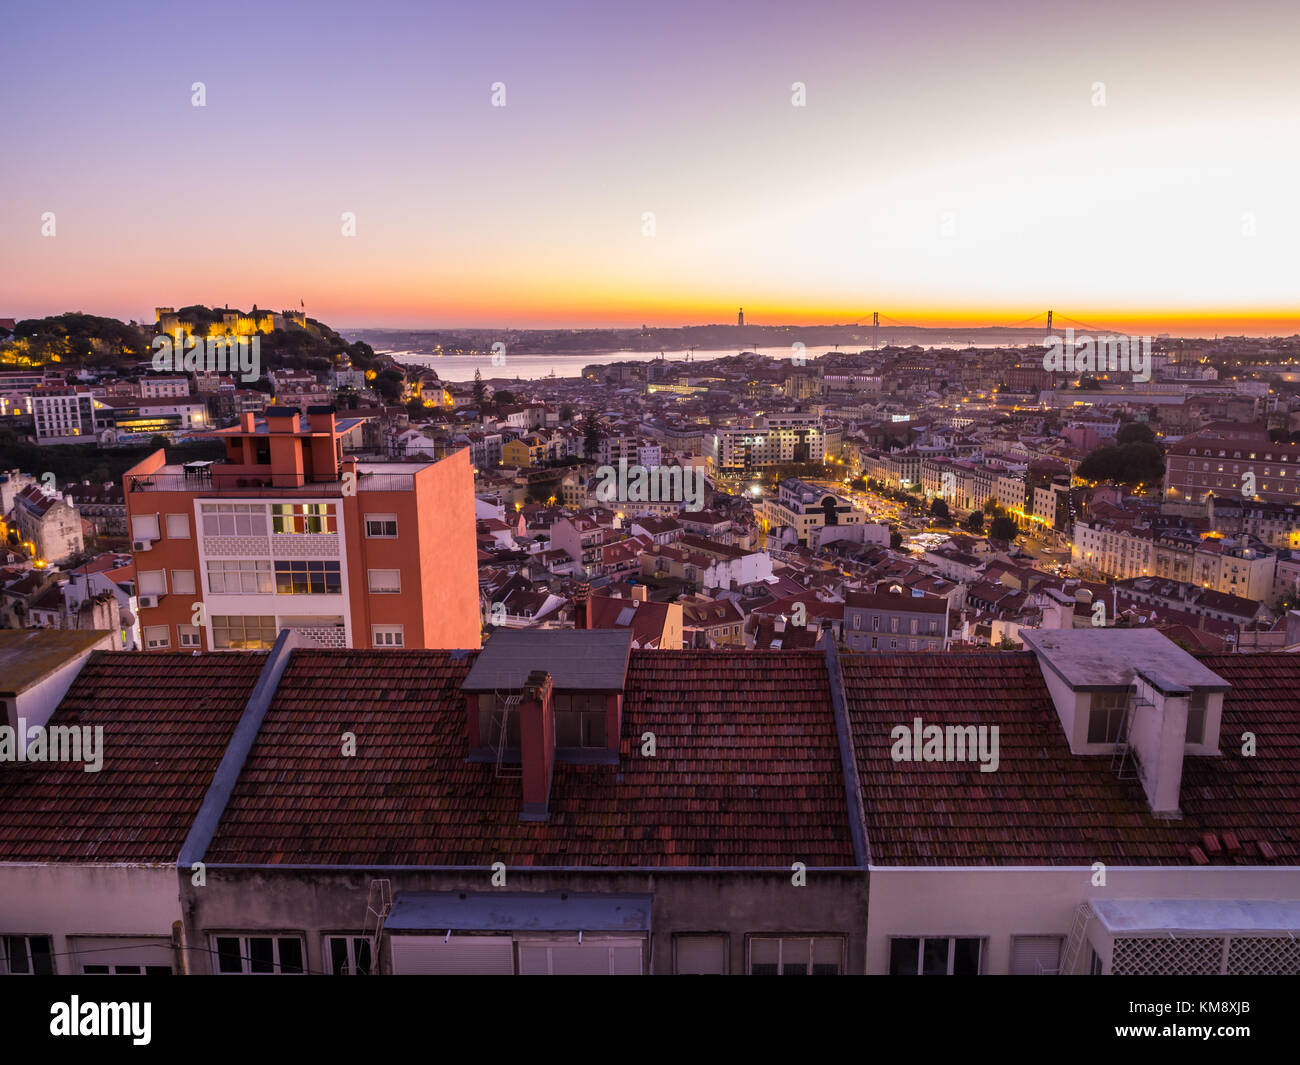 LISBON, PORTUGAL - NOVEMBER 19, 2017: The cityscape of Lisbon, Portugal, by night, shortly after sunset on a November - Stock Image